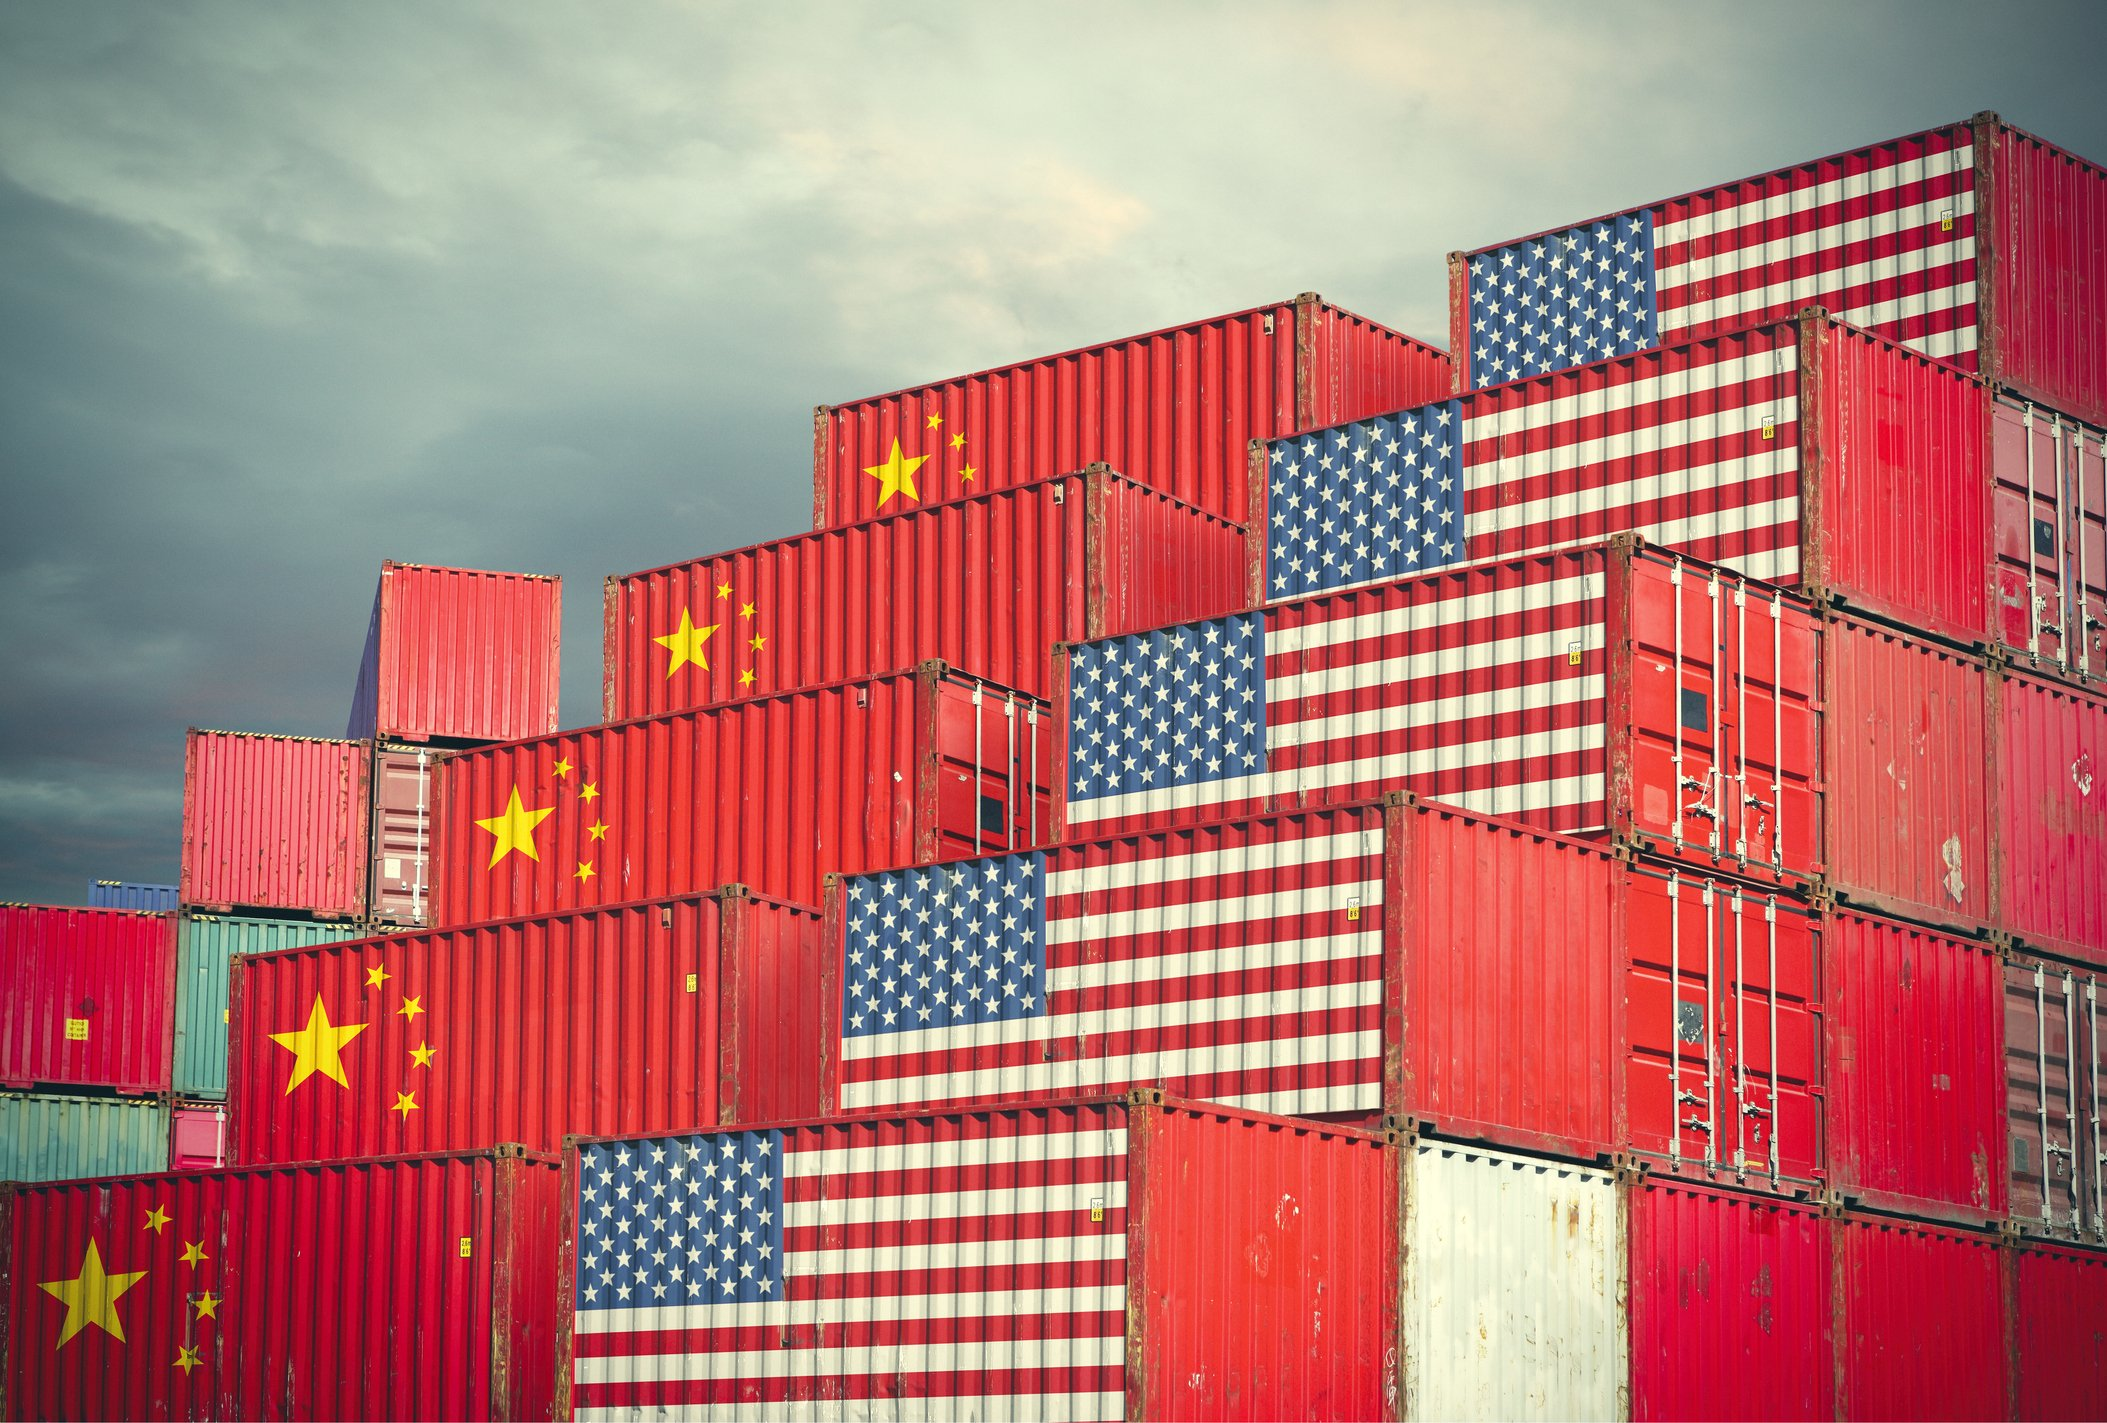 Cargo containers marked wth US and China flags, stacked side by side